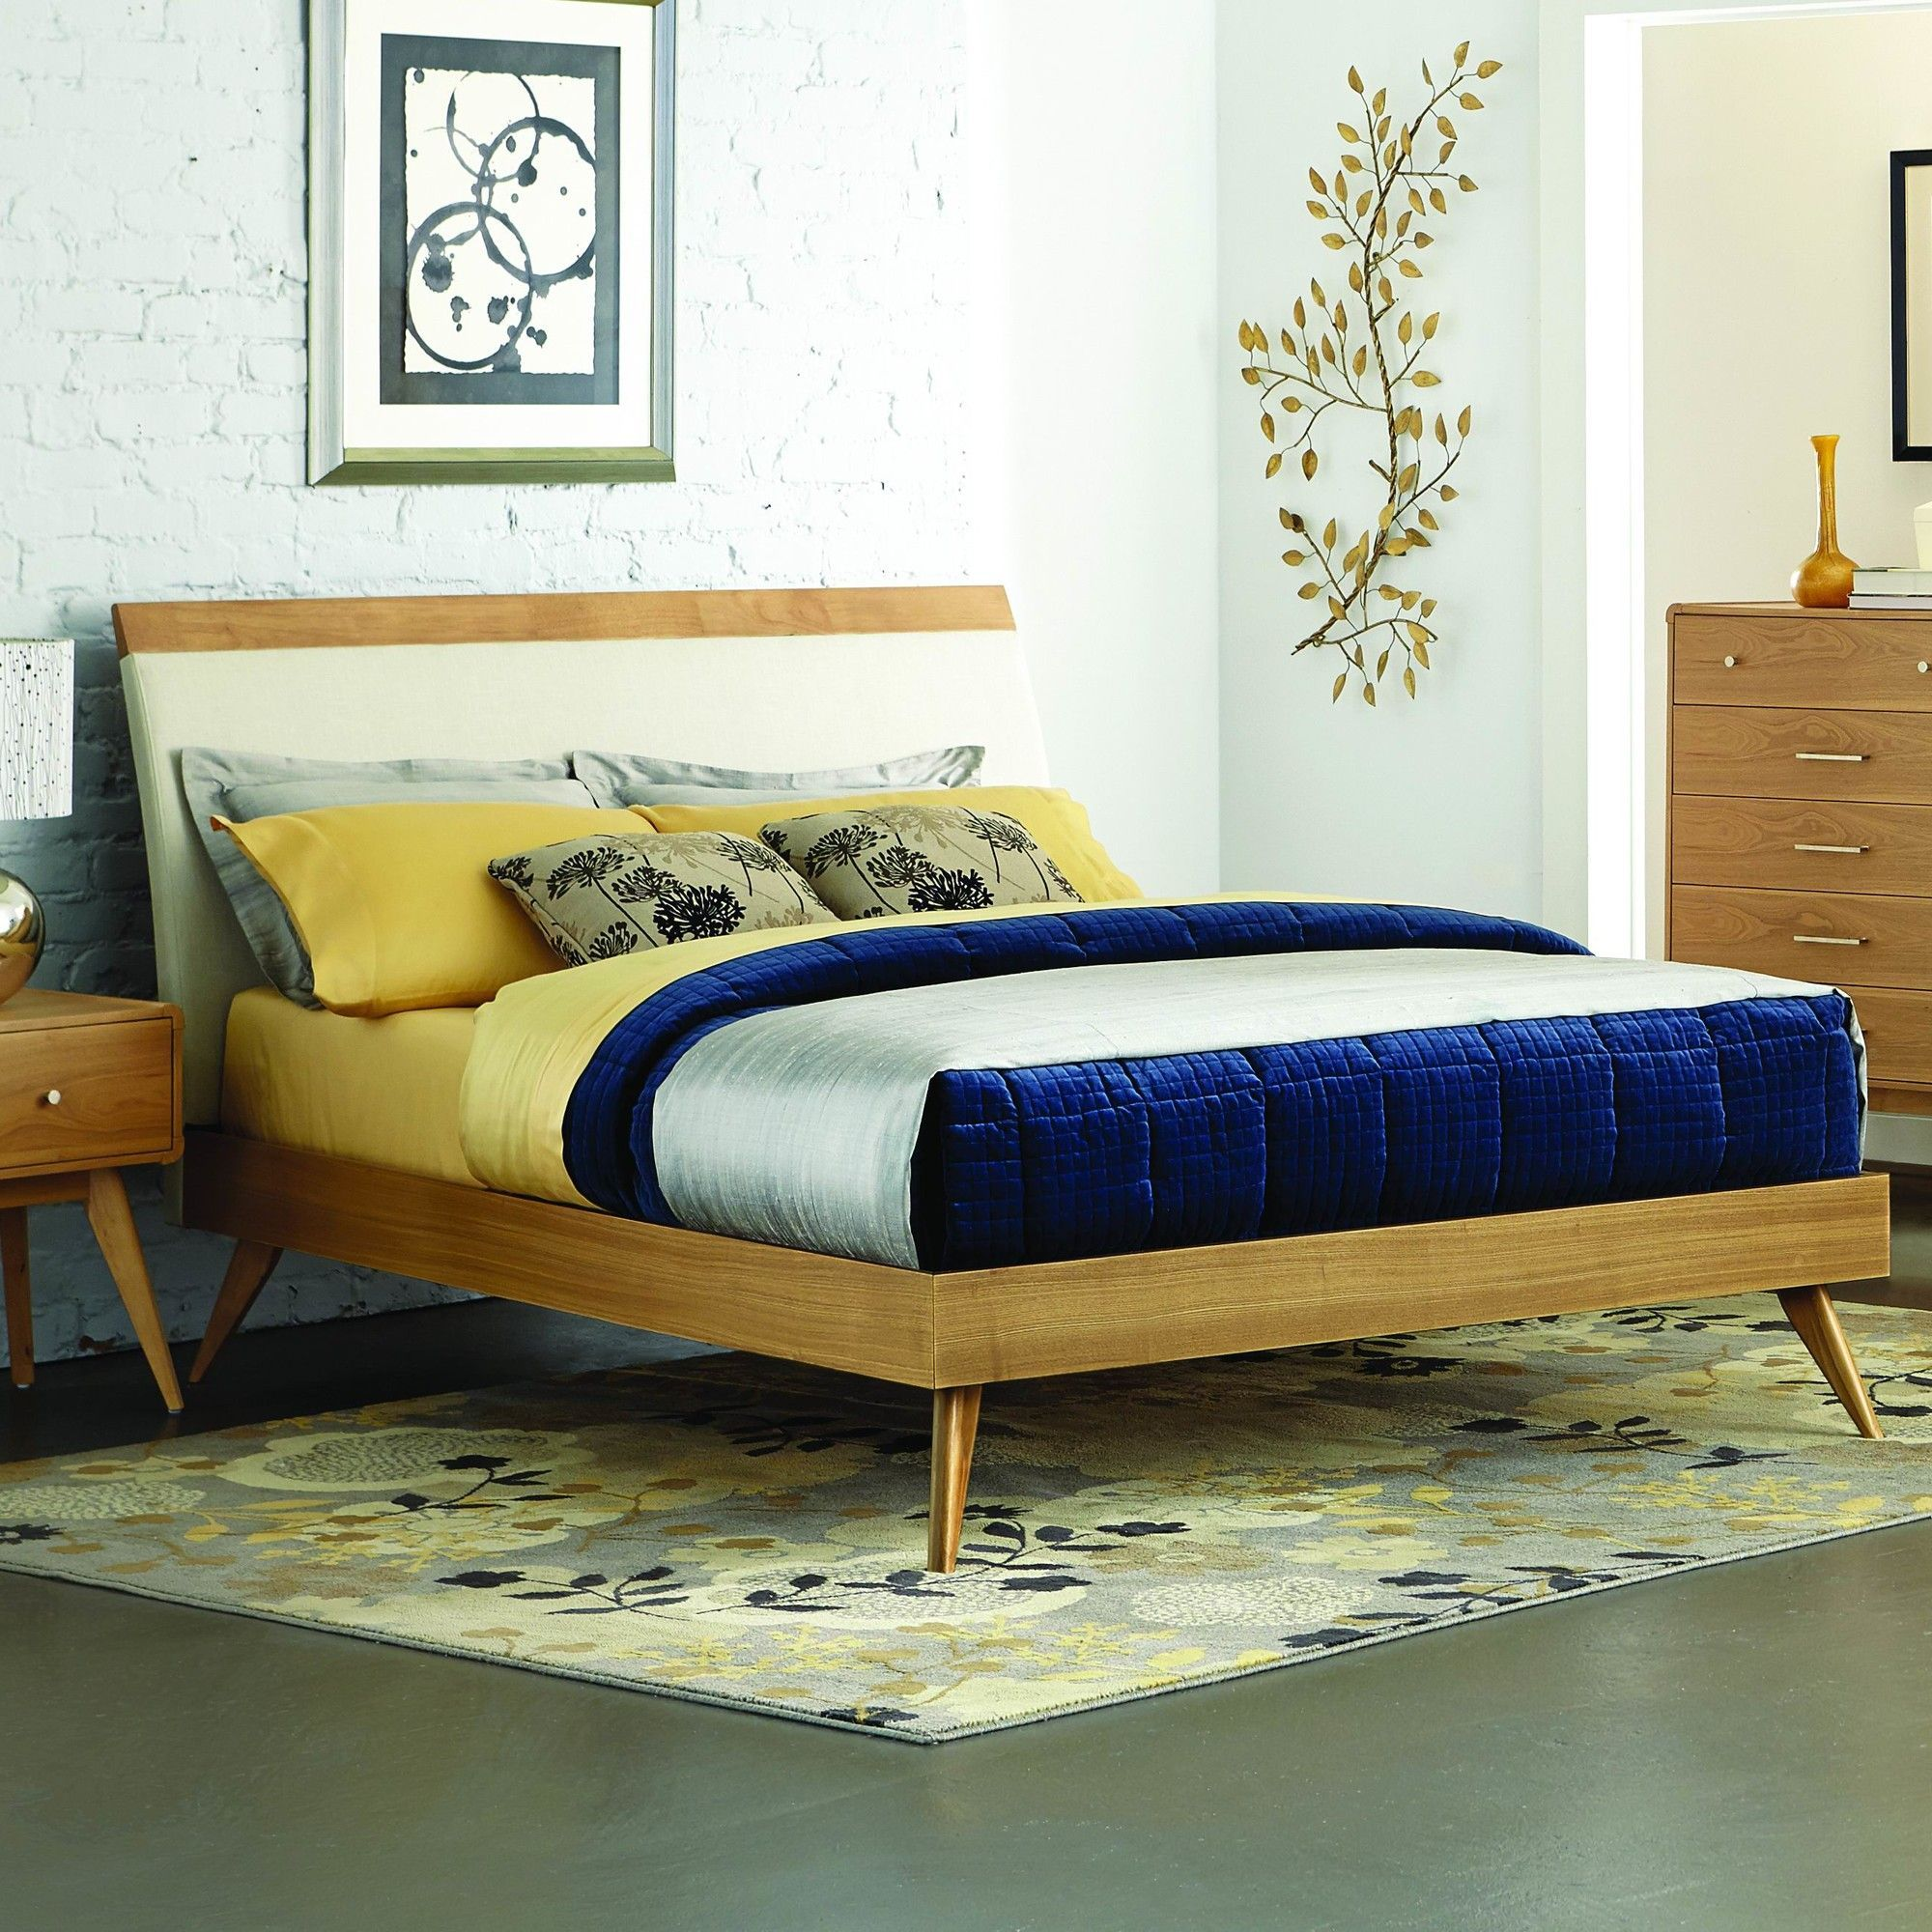 Anika Platform Bed I Want This And Nightstand So Much They Re Amazing Ll Also Take The Dresser While M Skiing Got Things Ill